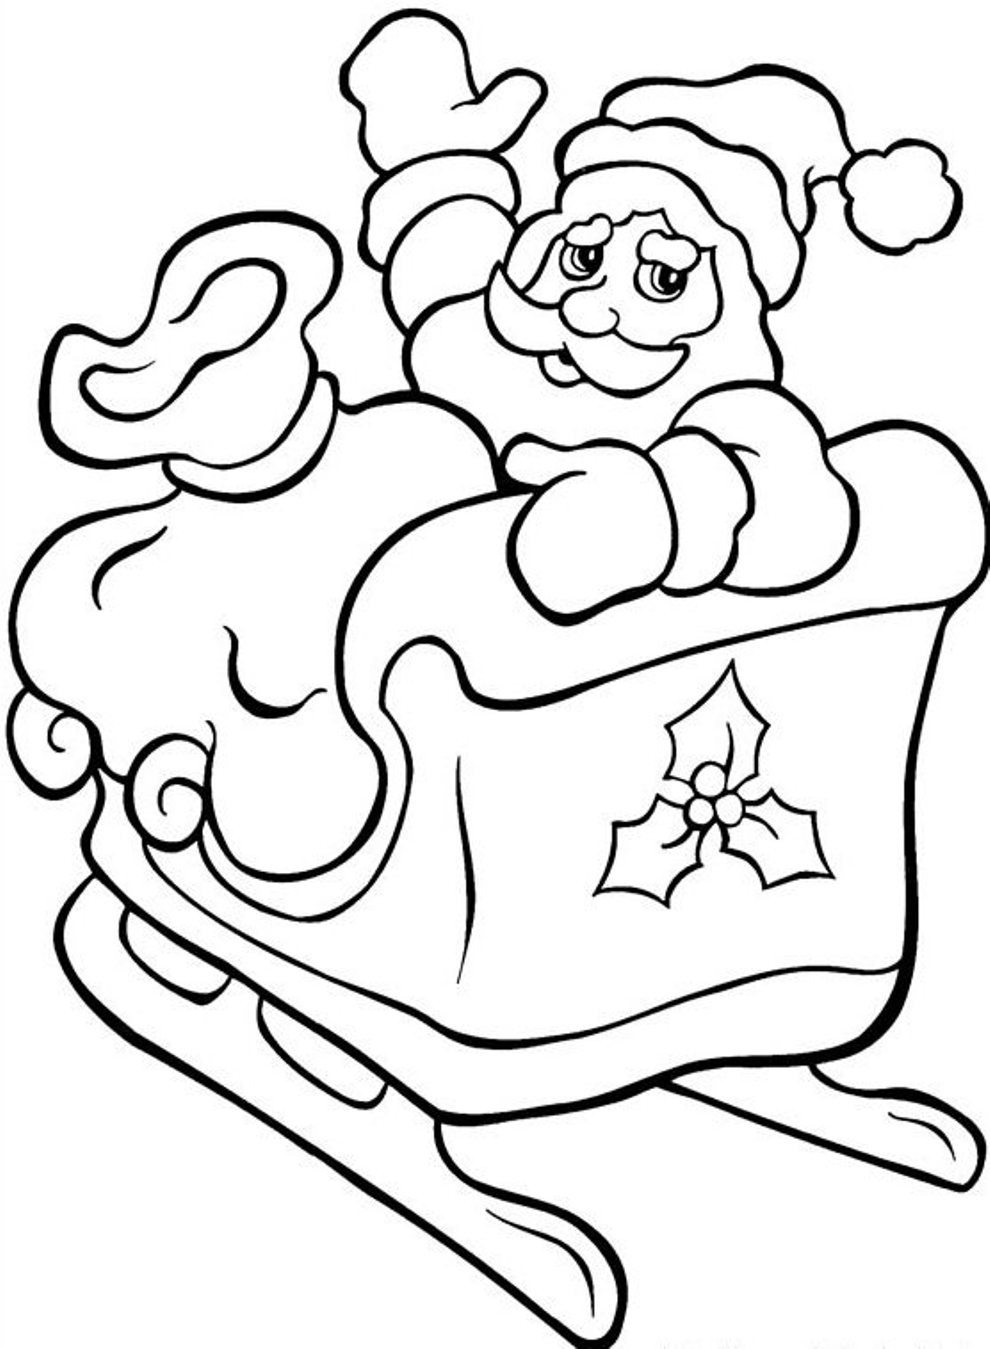 Santa Claus In Sleigh Coloring Page Printable Coloring Pages Christmas Santa With His Sleigh Christmas